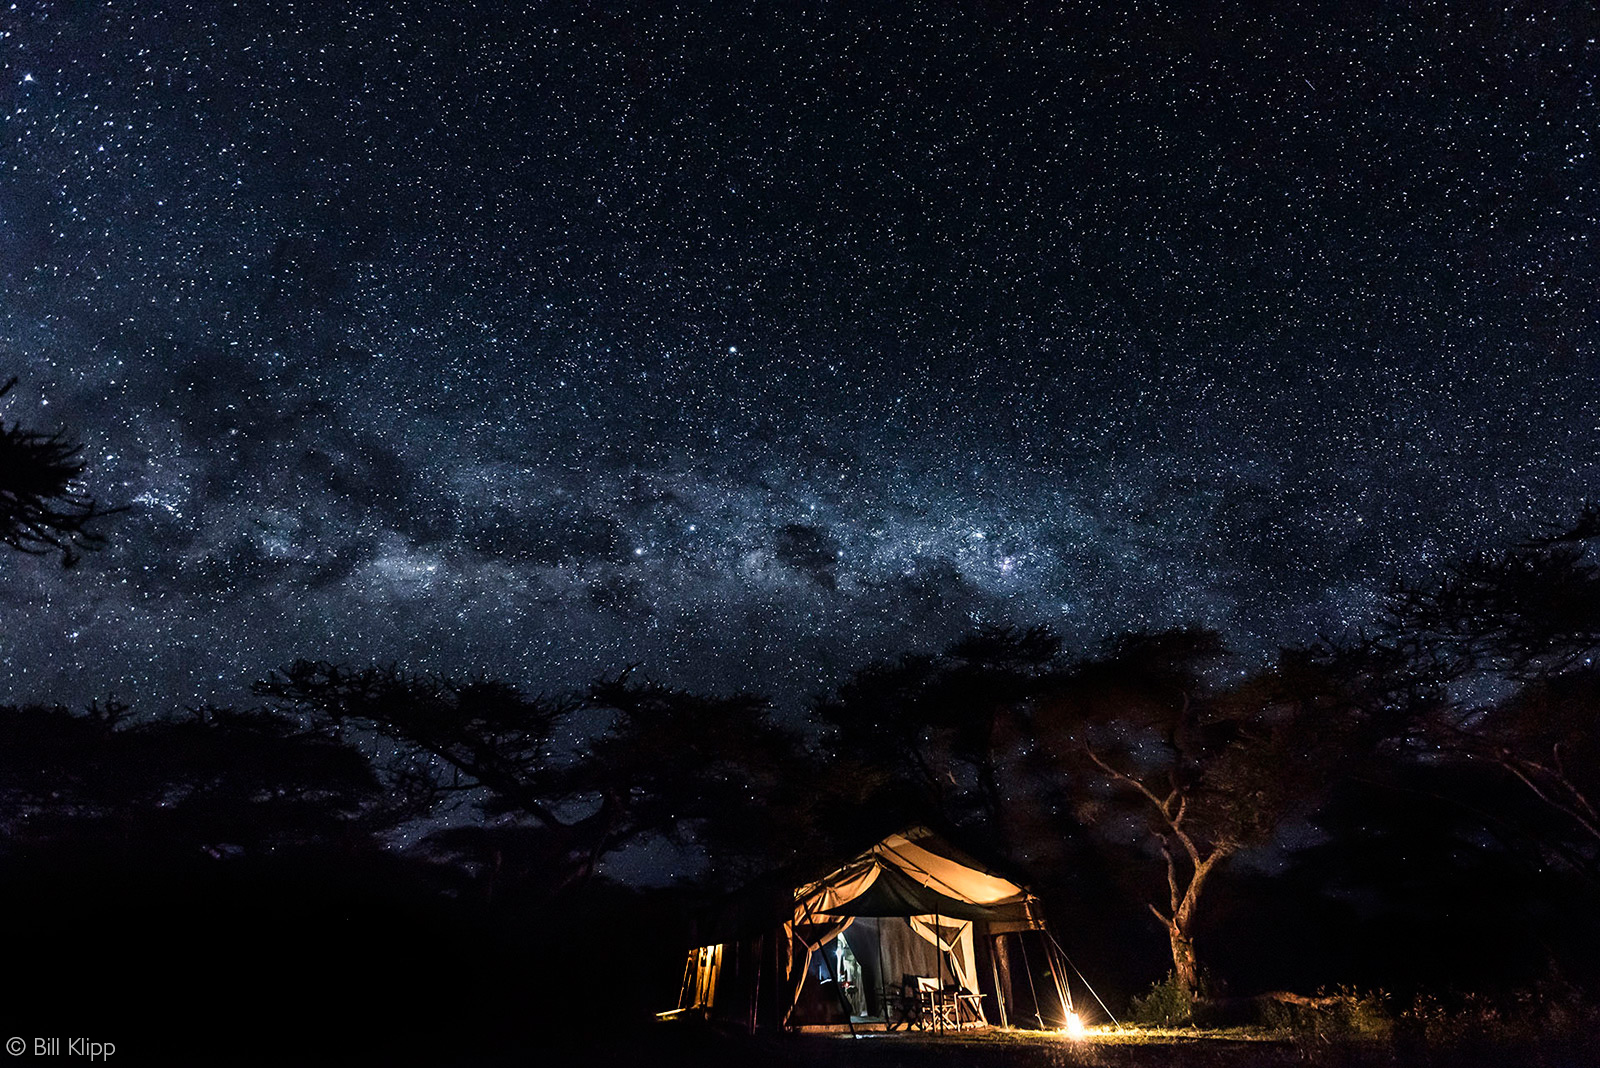 The Milky Way and night sky over our tent. Serengeti National Park, Tanzania © Bill Klipp